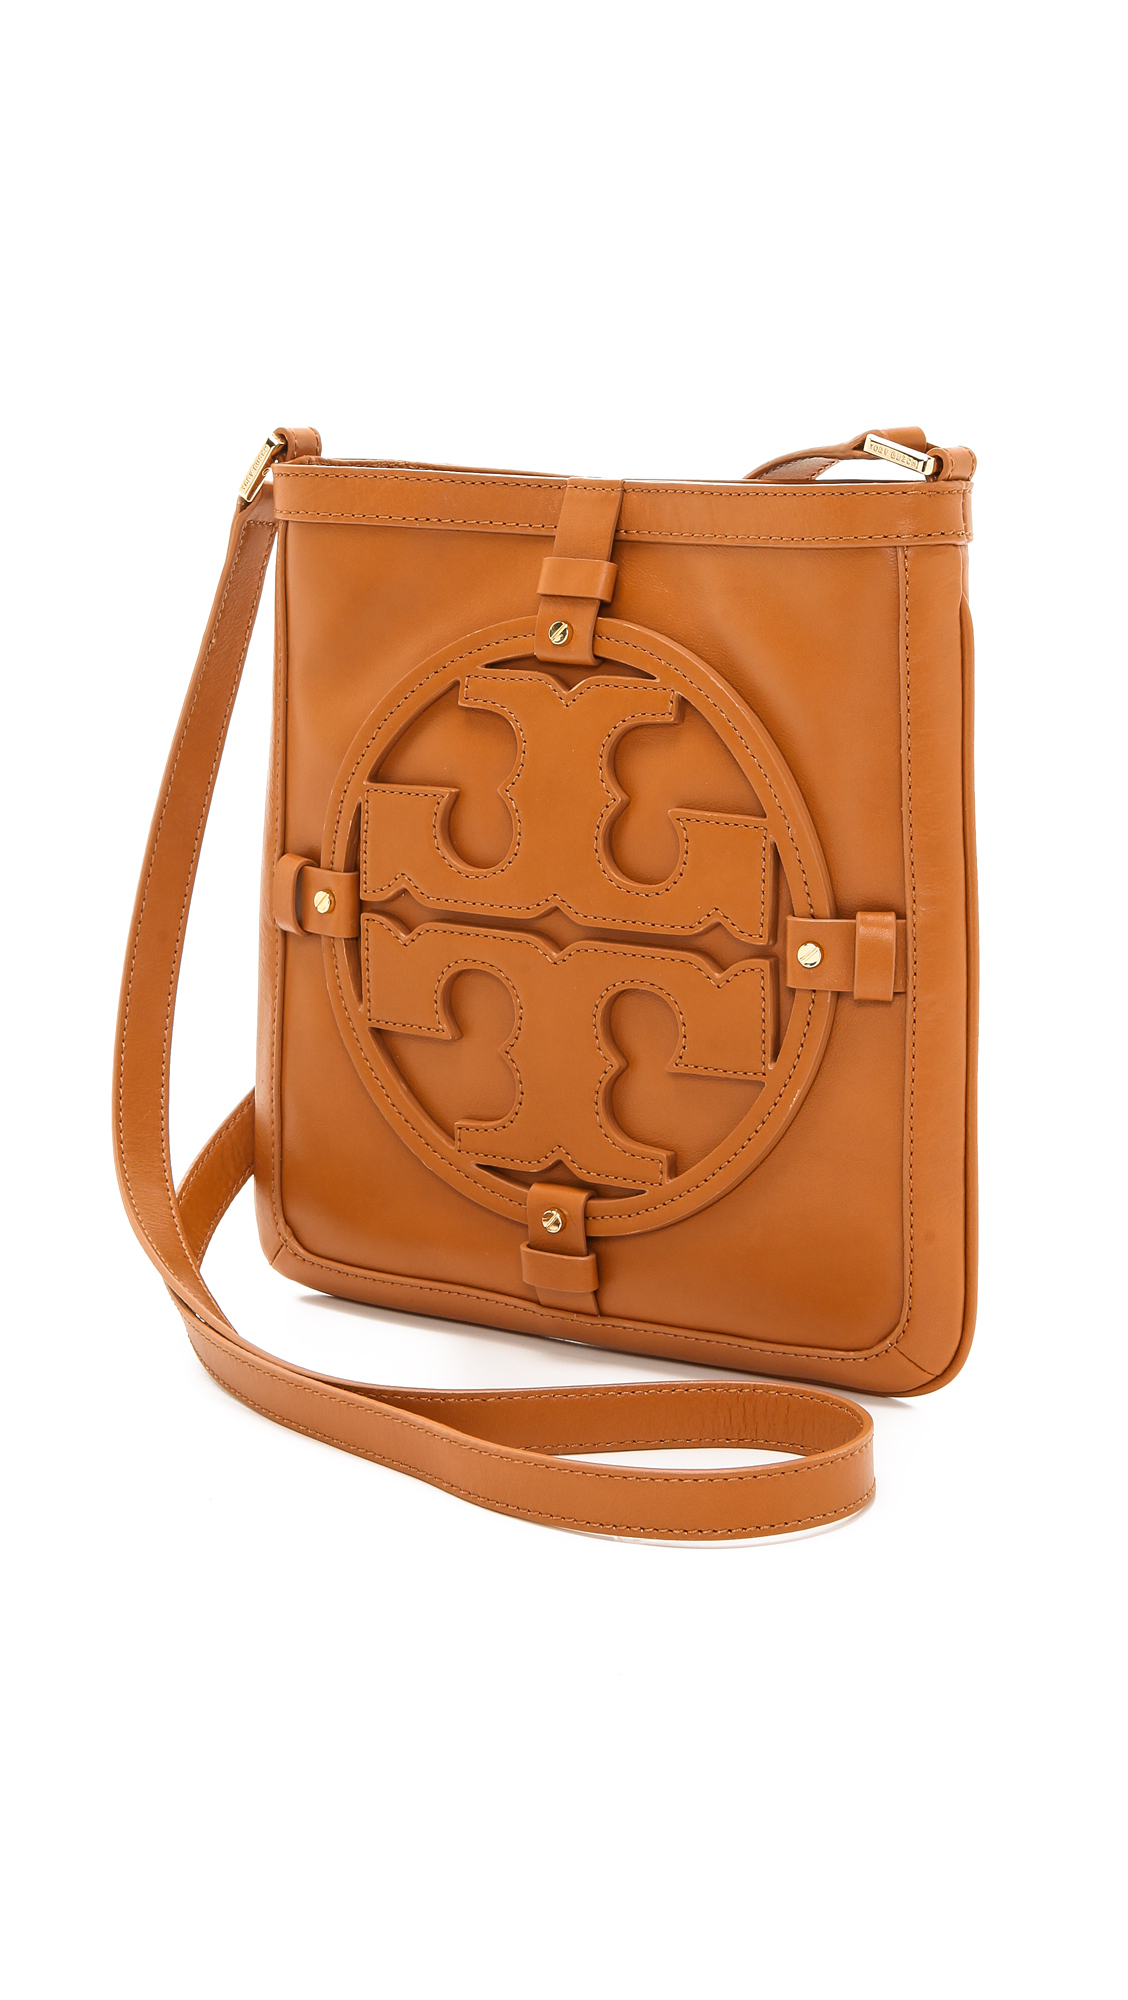 e6c86aaa80 Lyst - Tory Burch Holly Book Bag in Brown